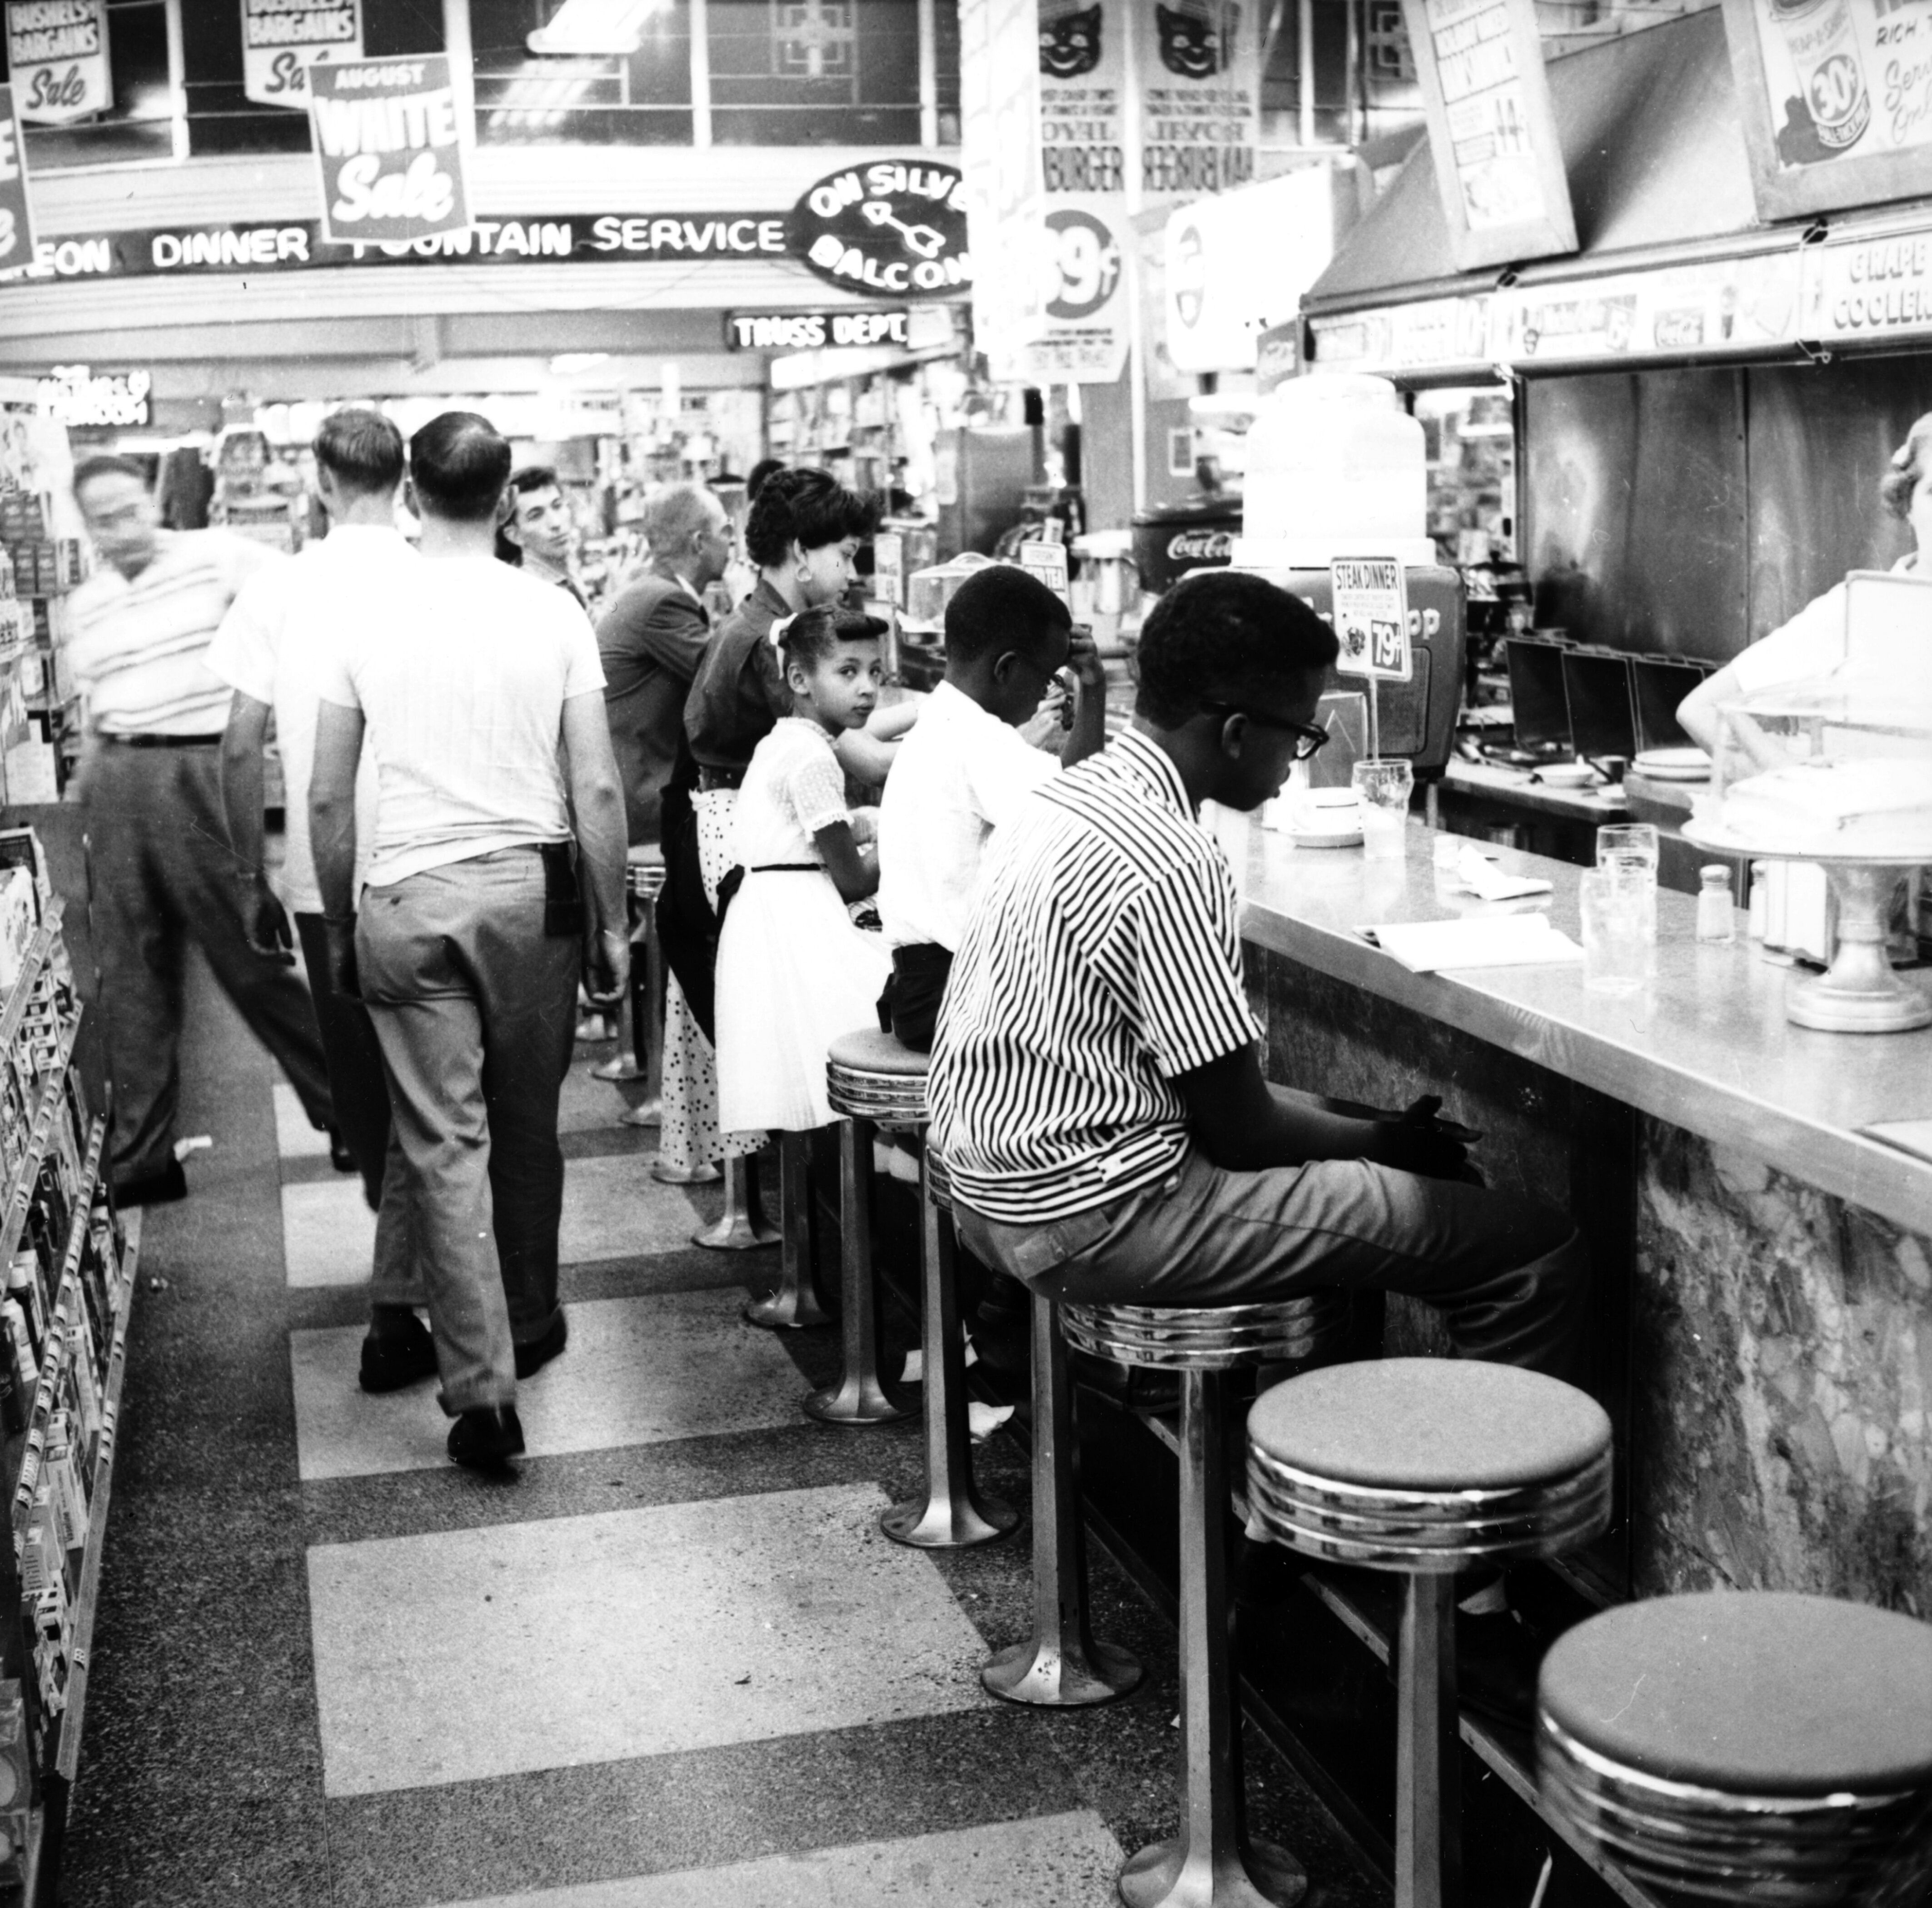 Demonstrators participate in a sit-in to protest the segregation of lunch counters across the nation.